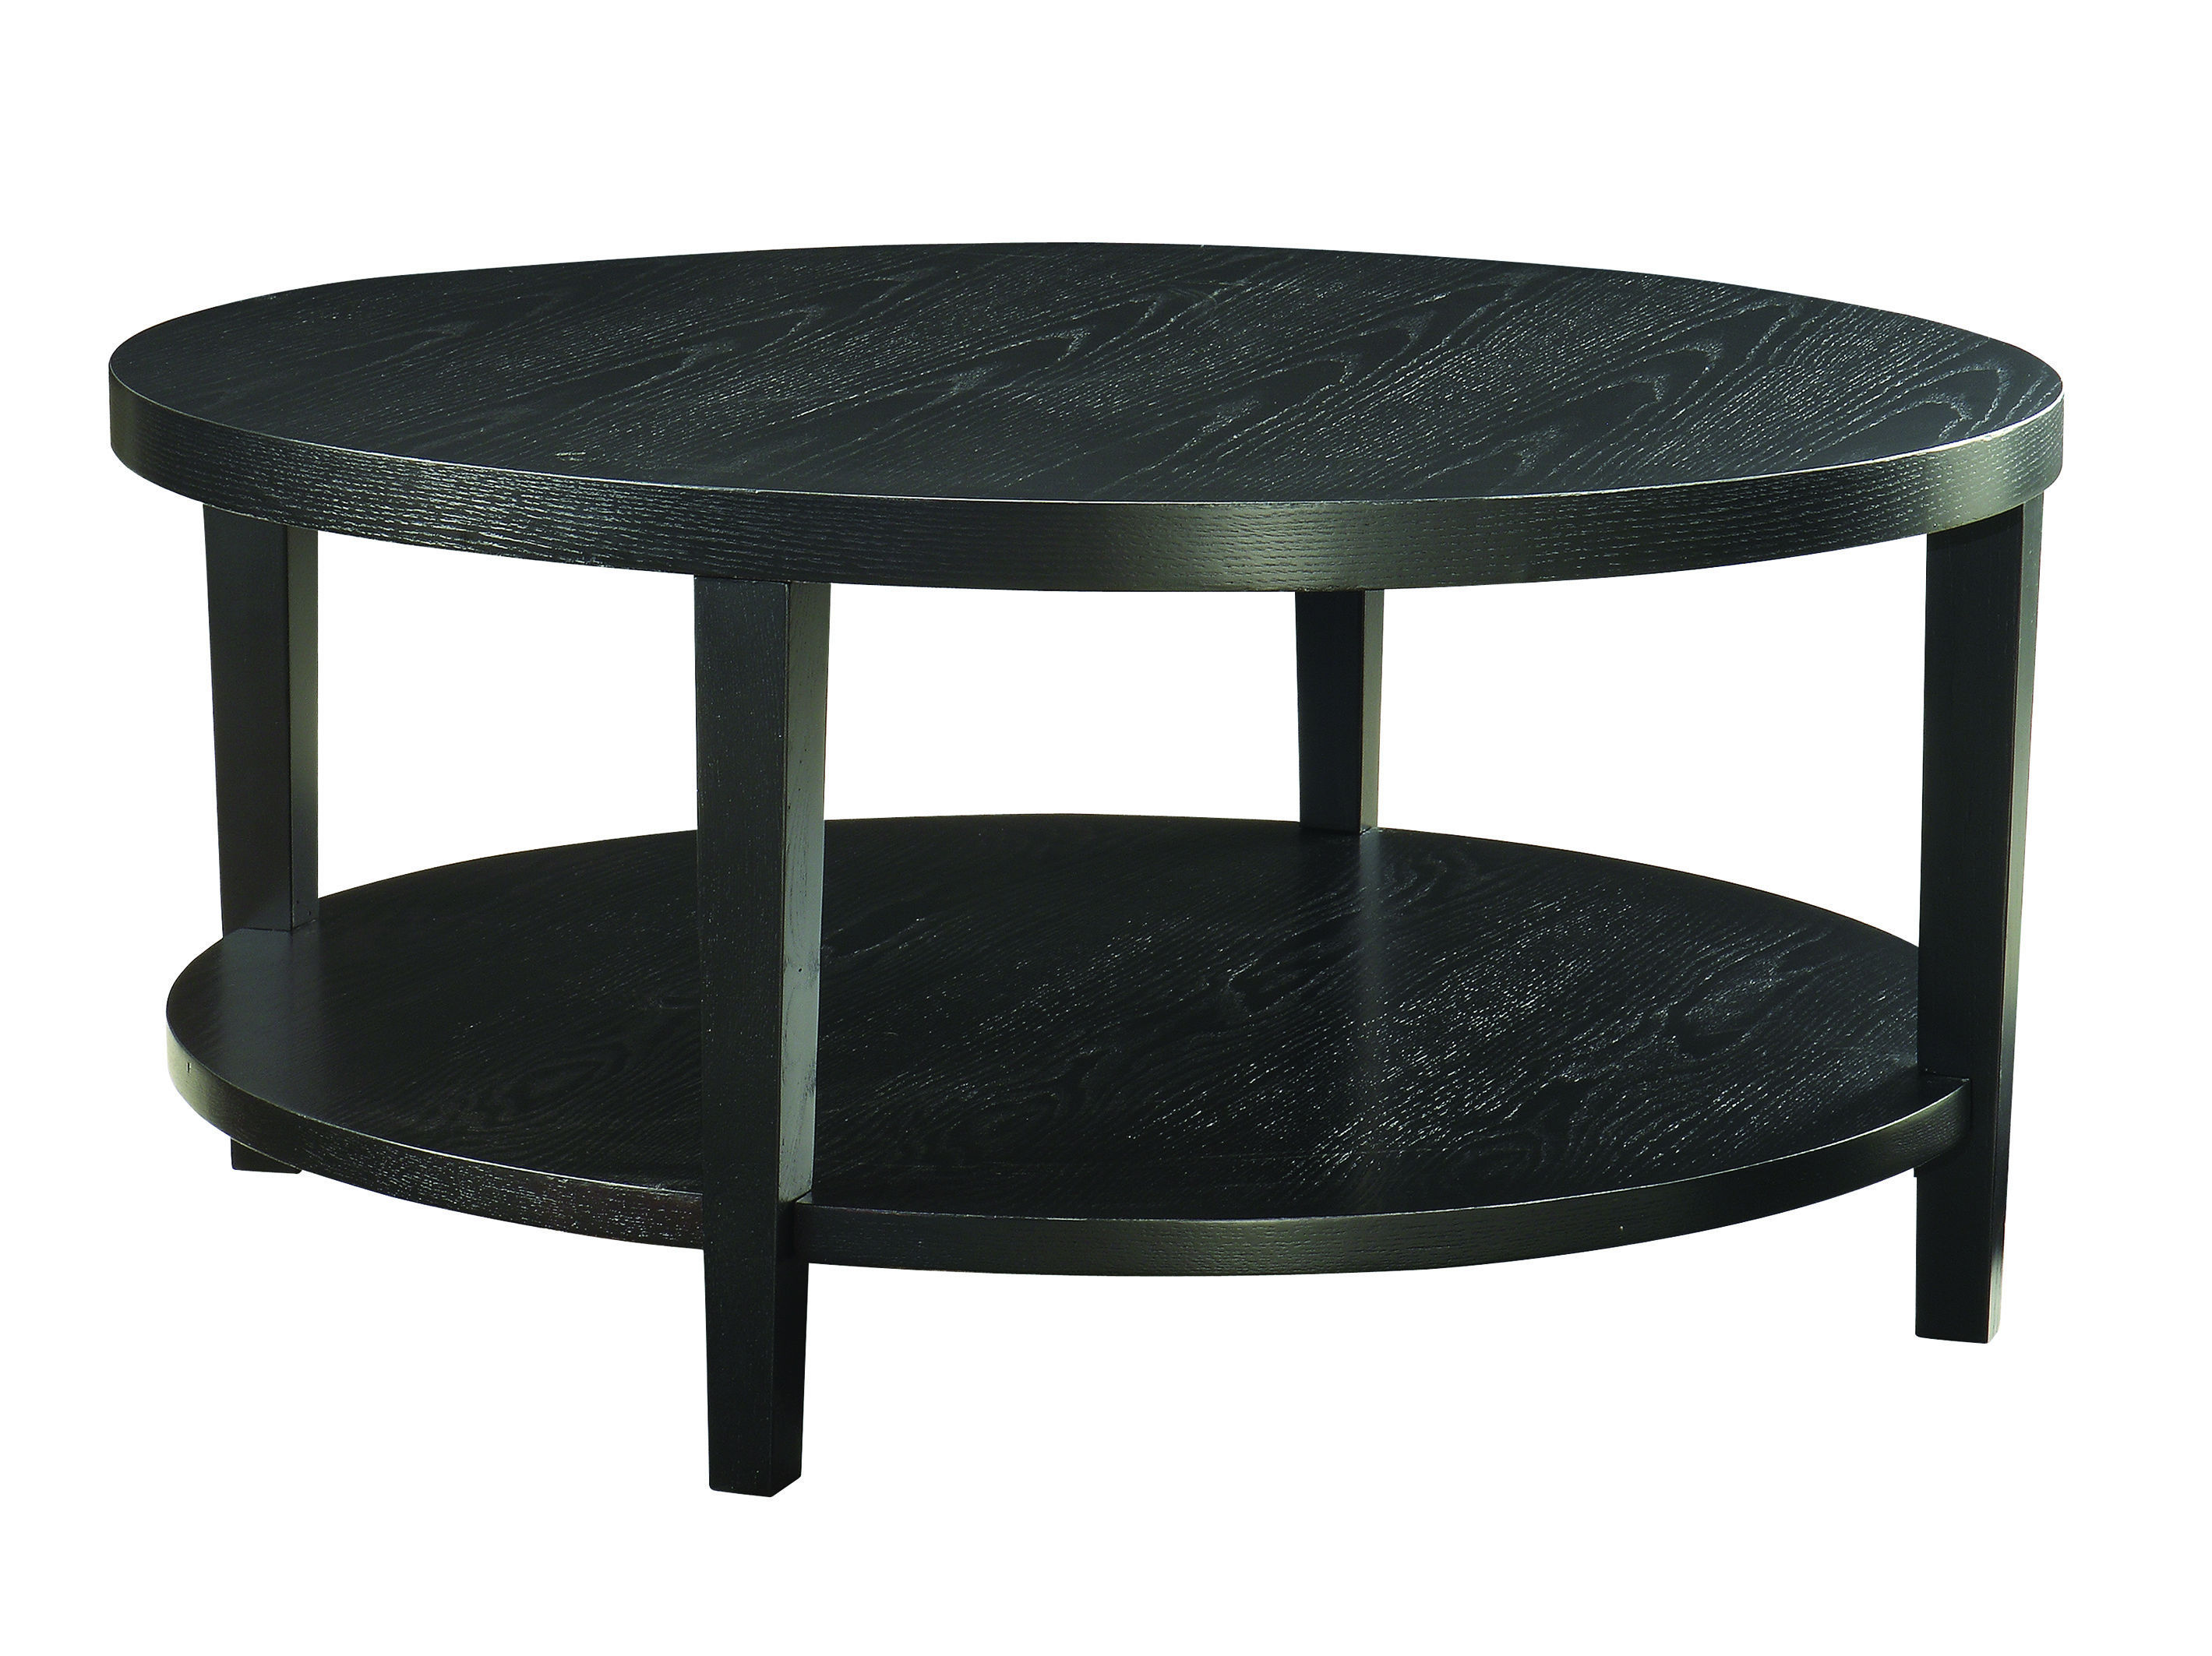 Merge Contemporary Black Wood Veneer 36 Inch Round Coffee Table The Classy Home